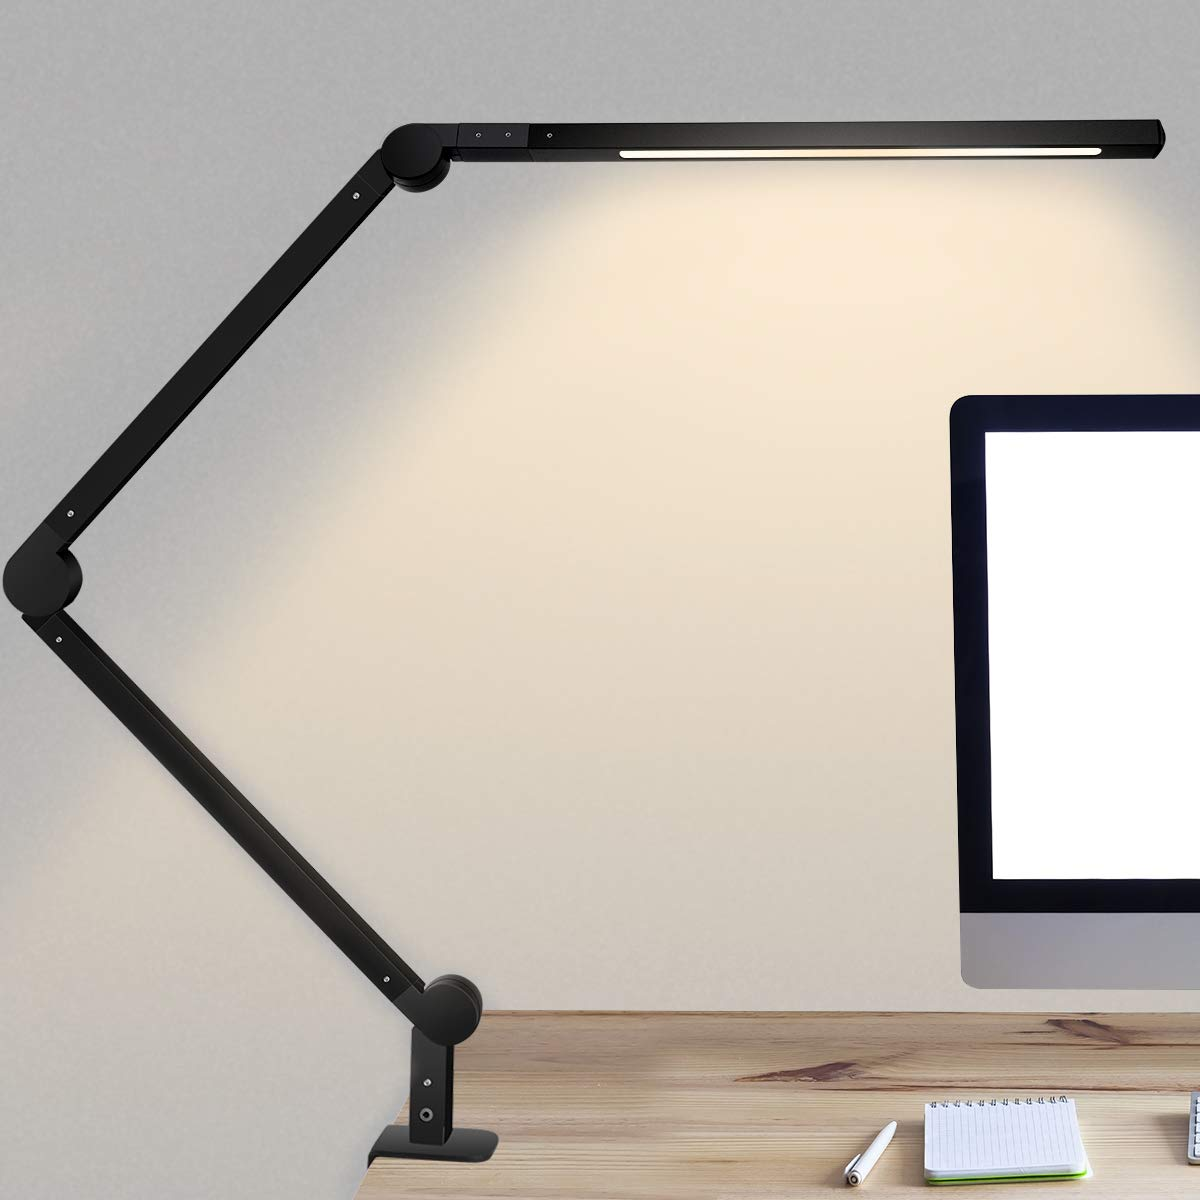 Dimmable Control Niulight Architect Workbench